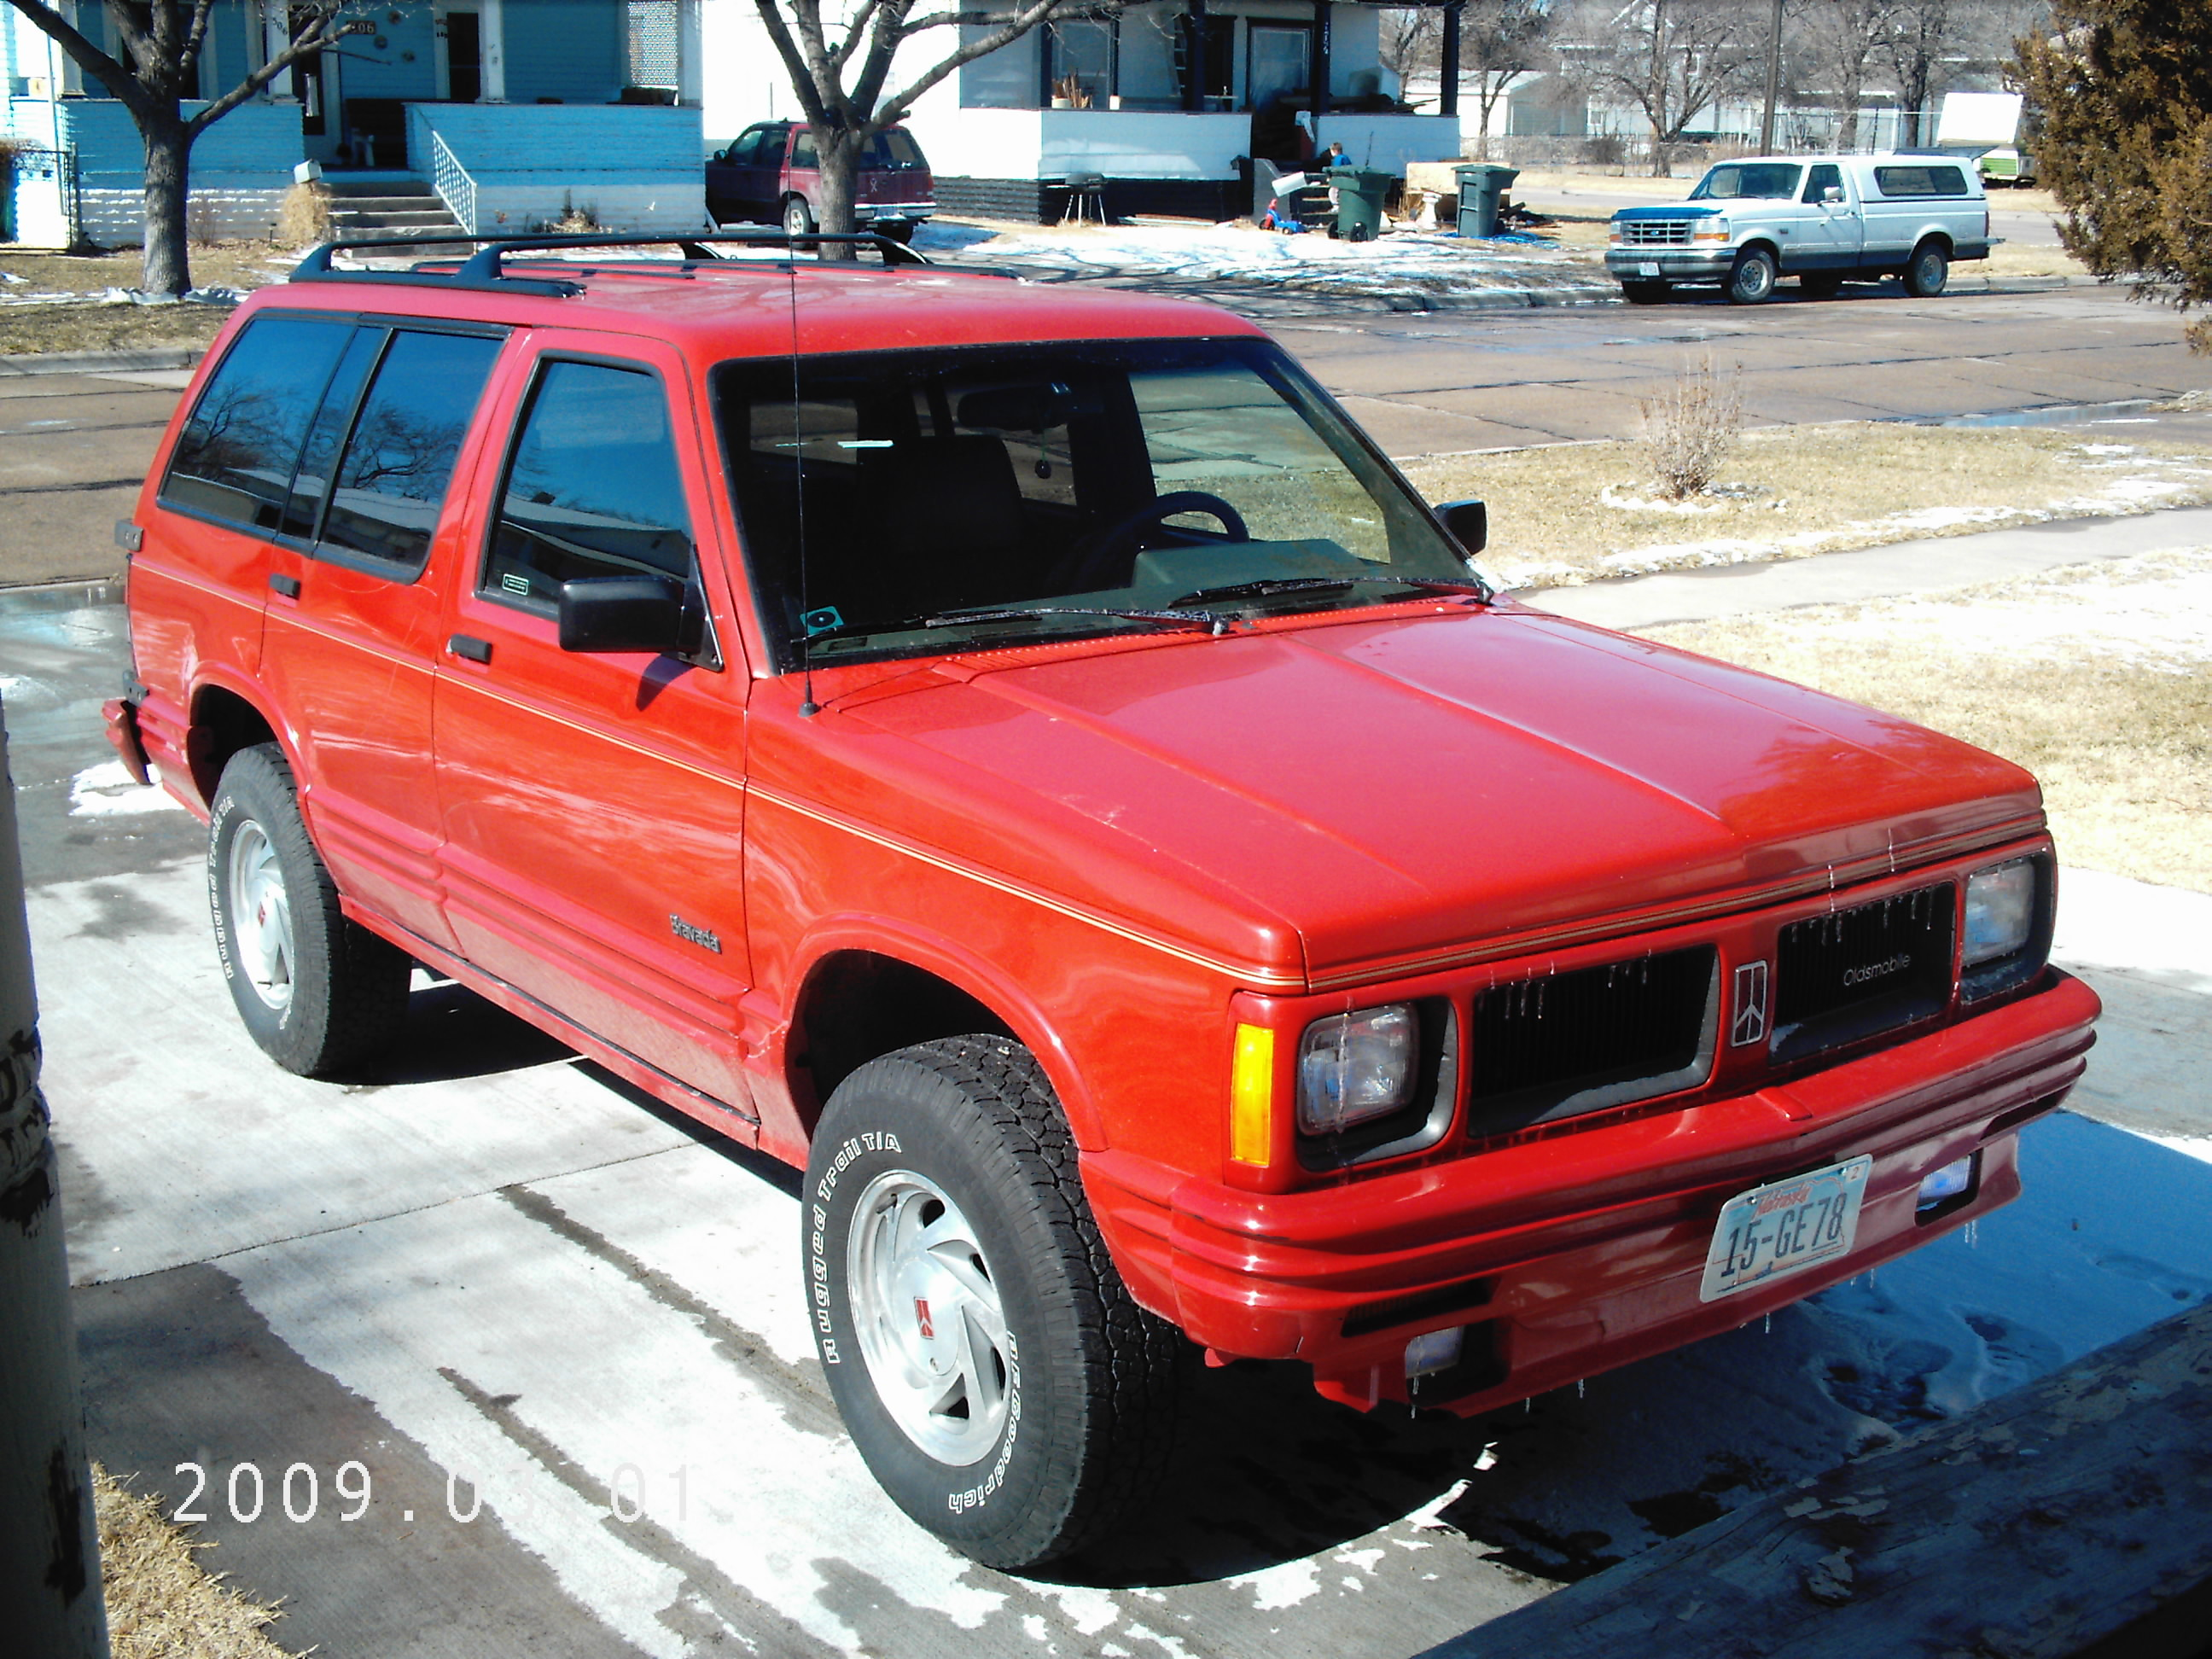 Dj_anarchy_420 1994 oldsmobile bravada